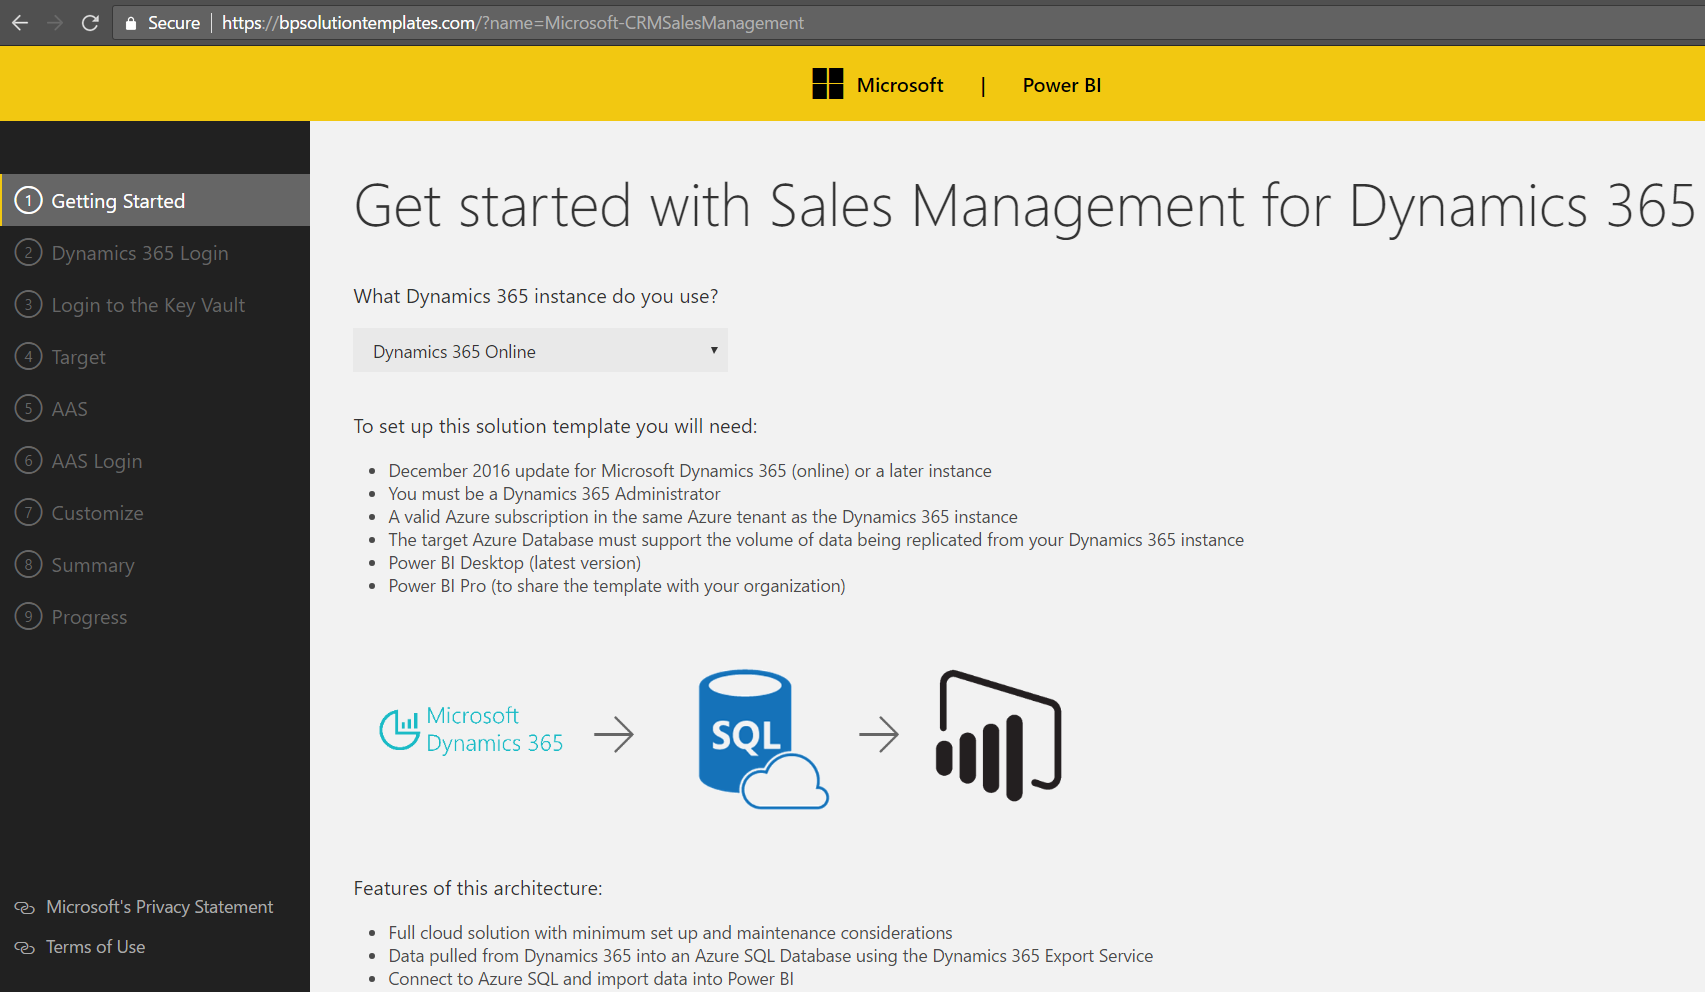 Dynamics 365 Solution Templates Install - Sales Management - Carl de